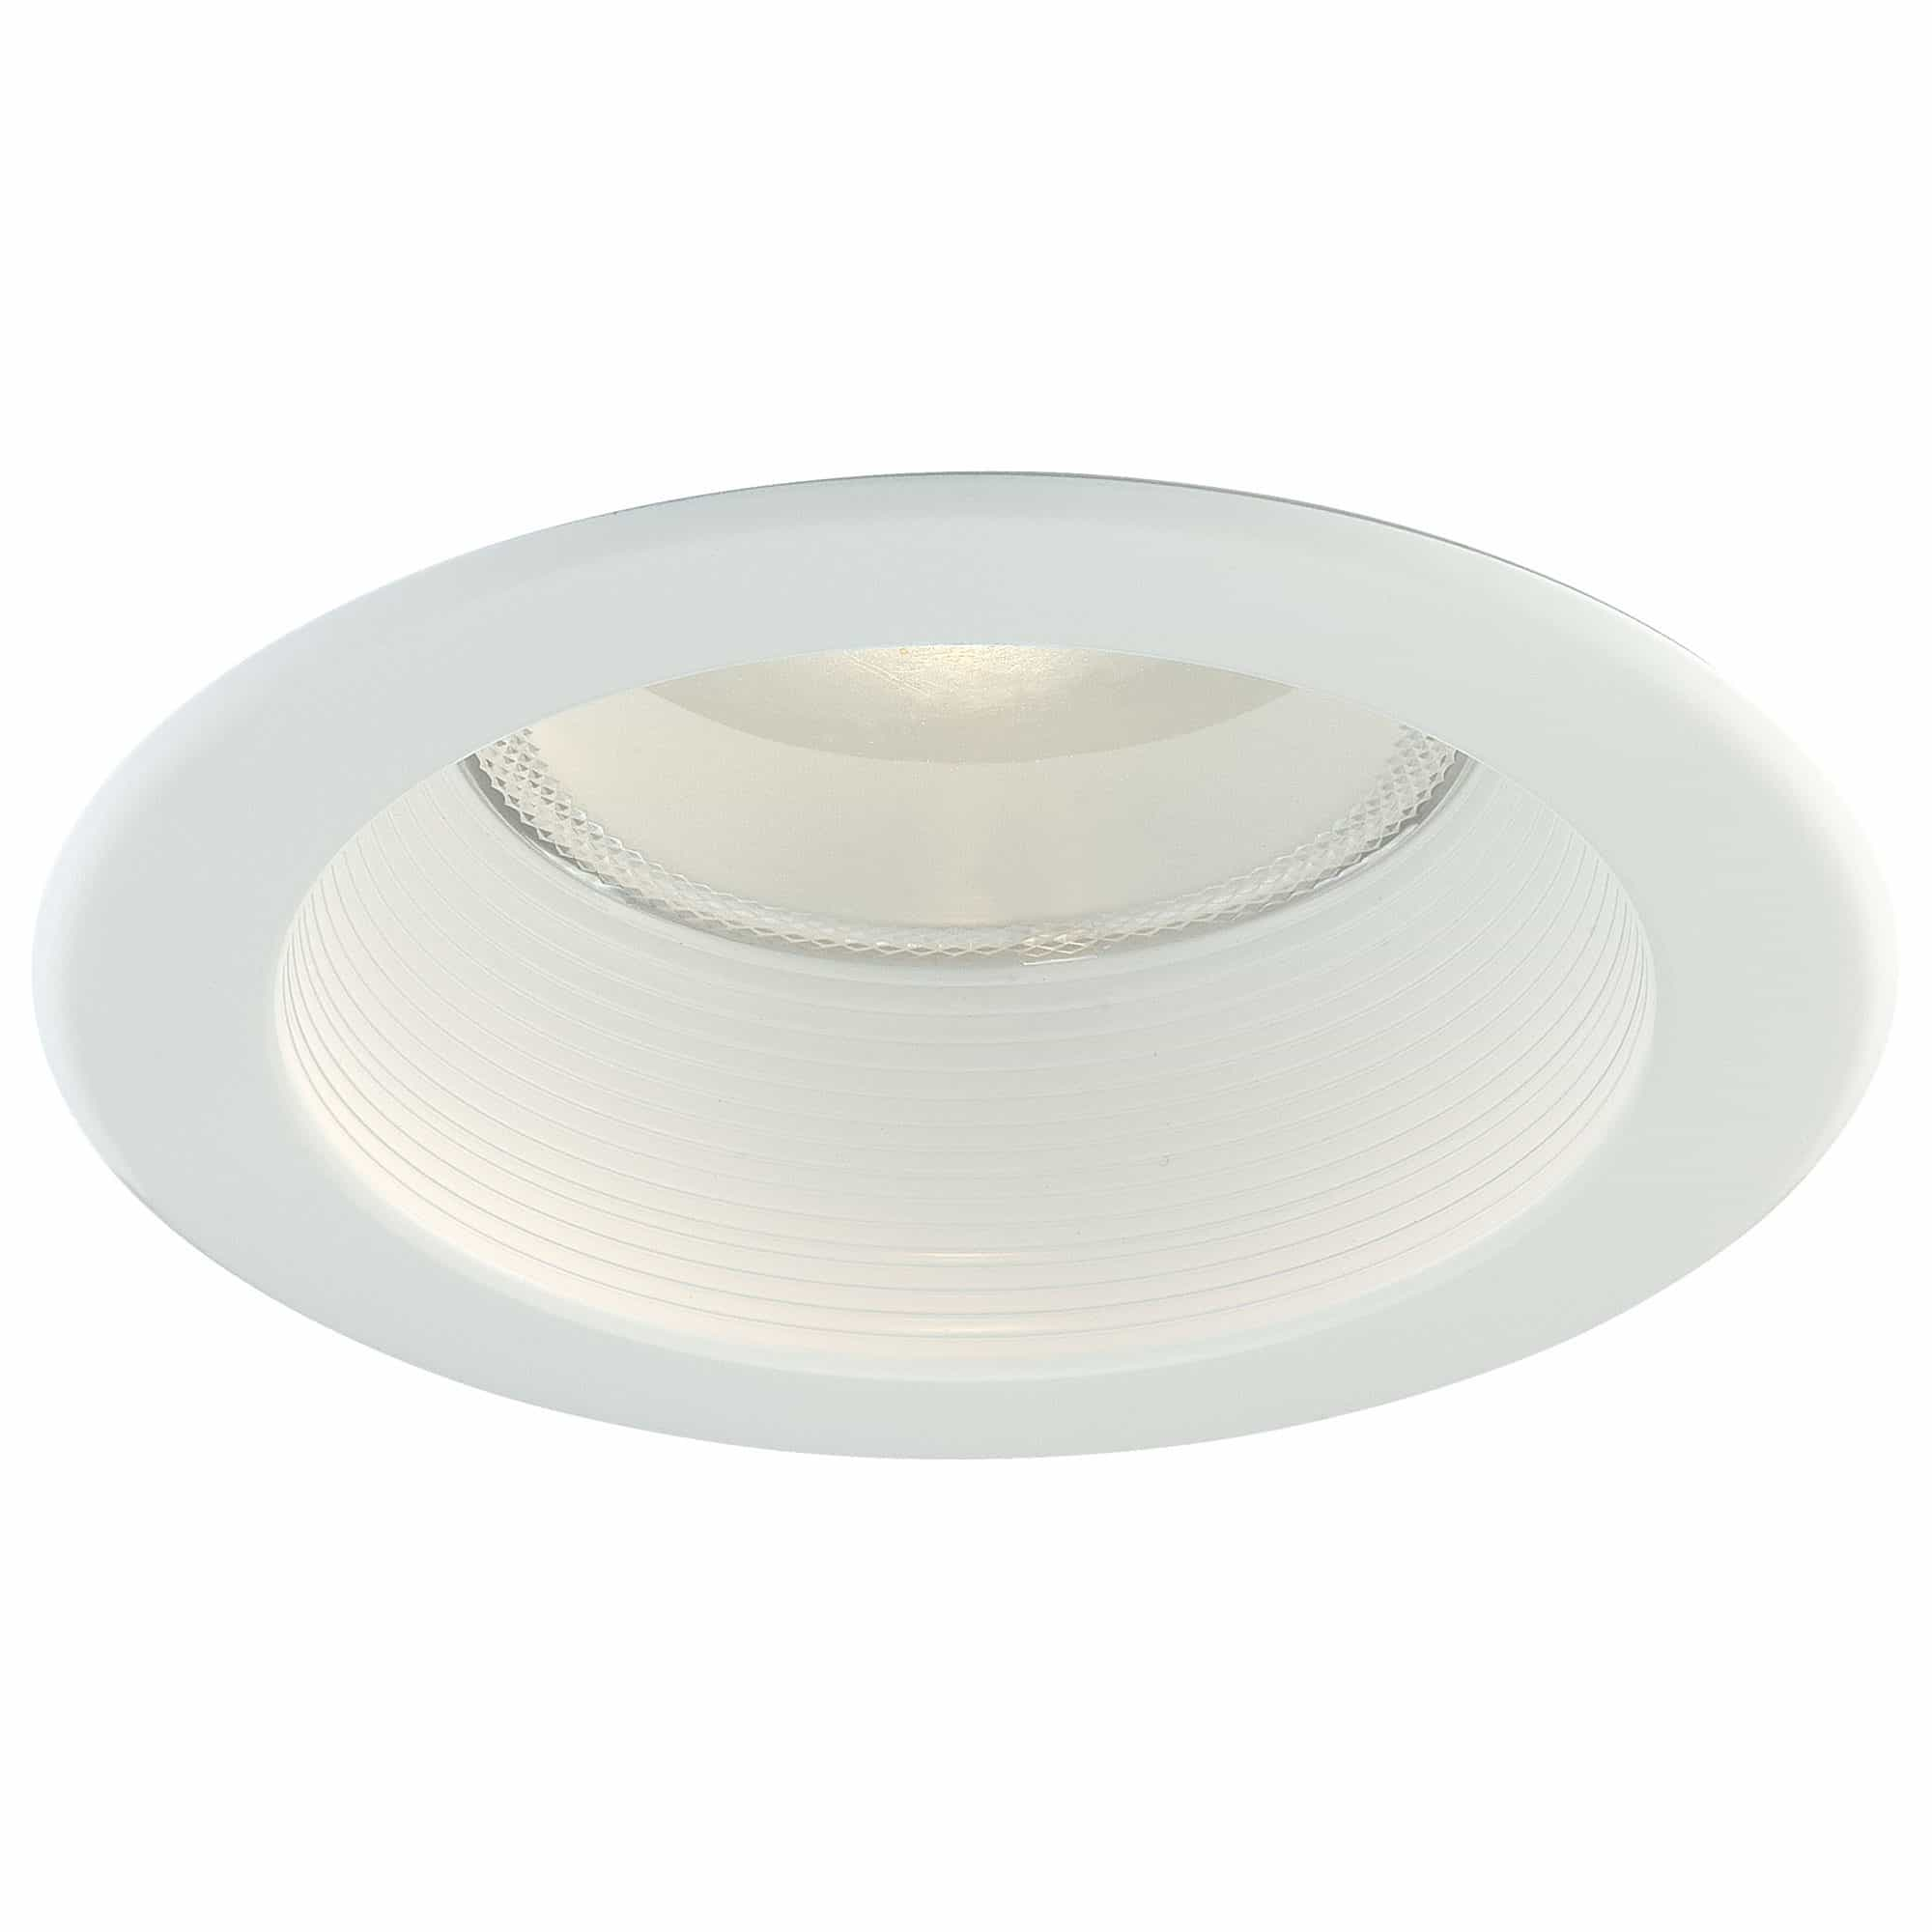 Recessed Lighting Recessed Lighting Williams Electric 510 339 5601 Oakland